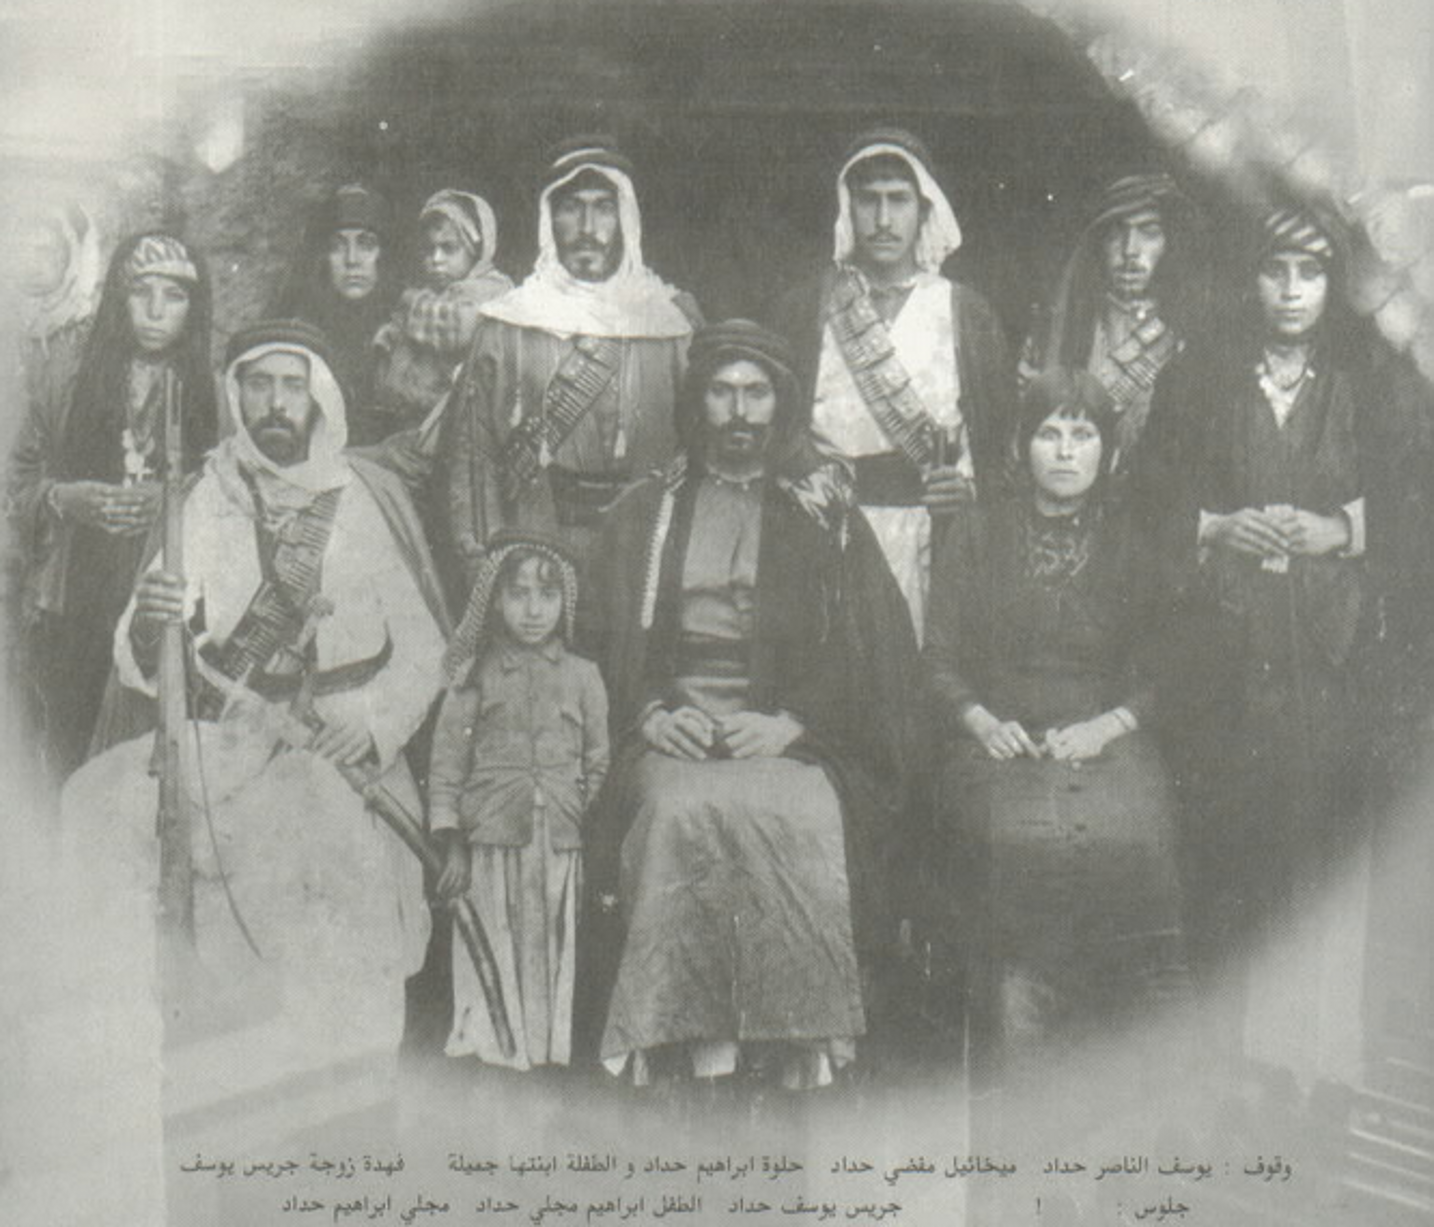 Ramallah - رام الله : Some members of the Haddad(in) tribe of Madaba in Jordan, A Banu Ghassan tribe of Yemen, who migrated via Hijaz to Shobak, Karak, Madaba, and some of whom crossed the River Jordan to settle and establish the village of Ramallah.